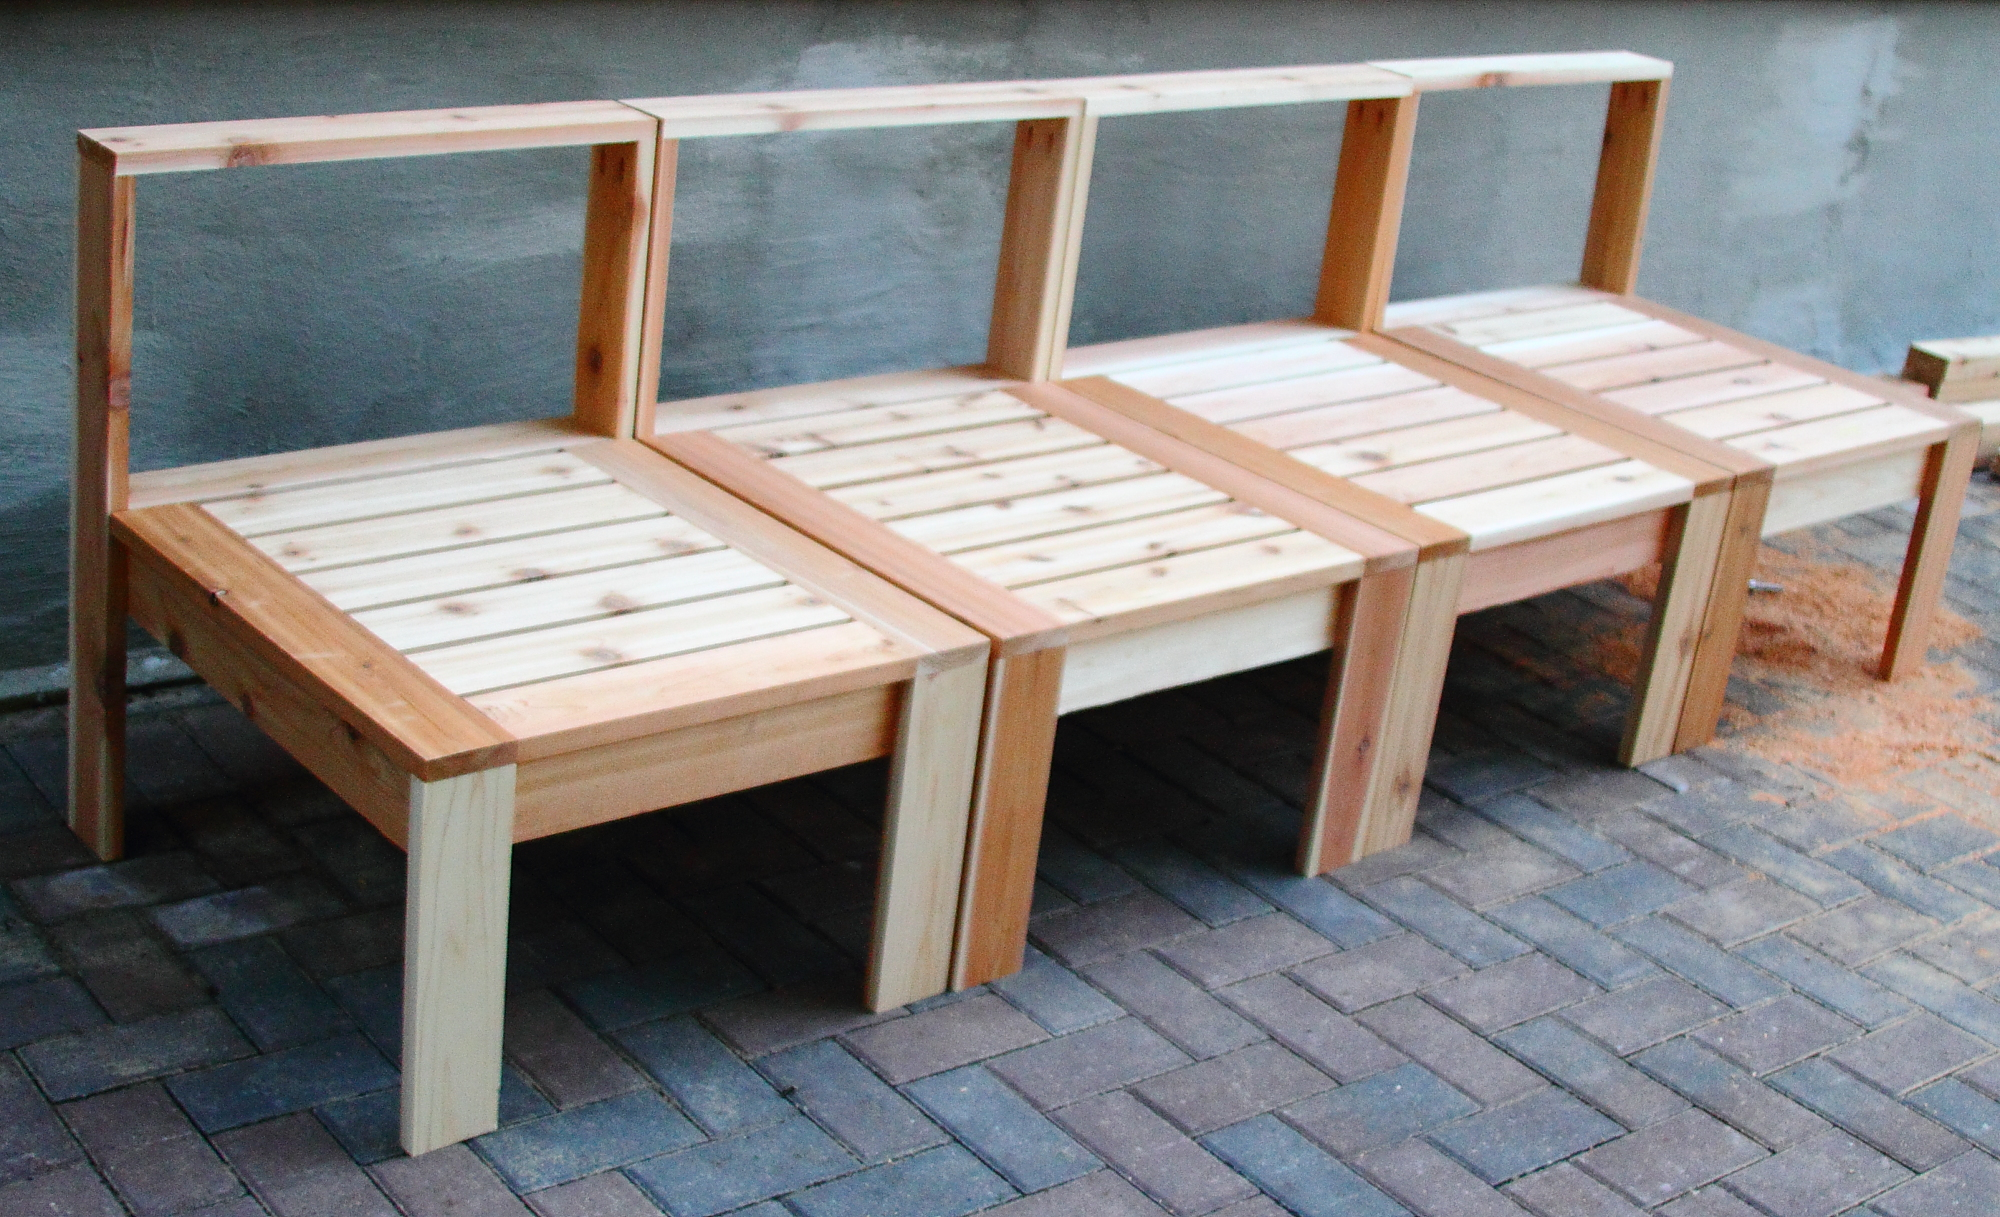 Woodworking diy patio furniture PDF Free Download